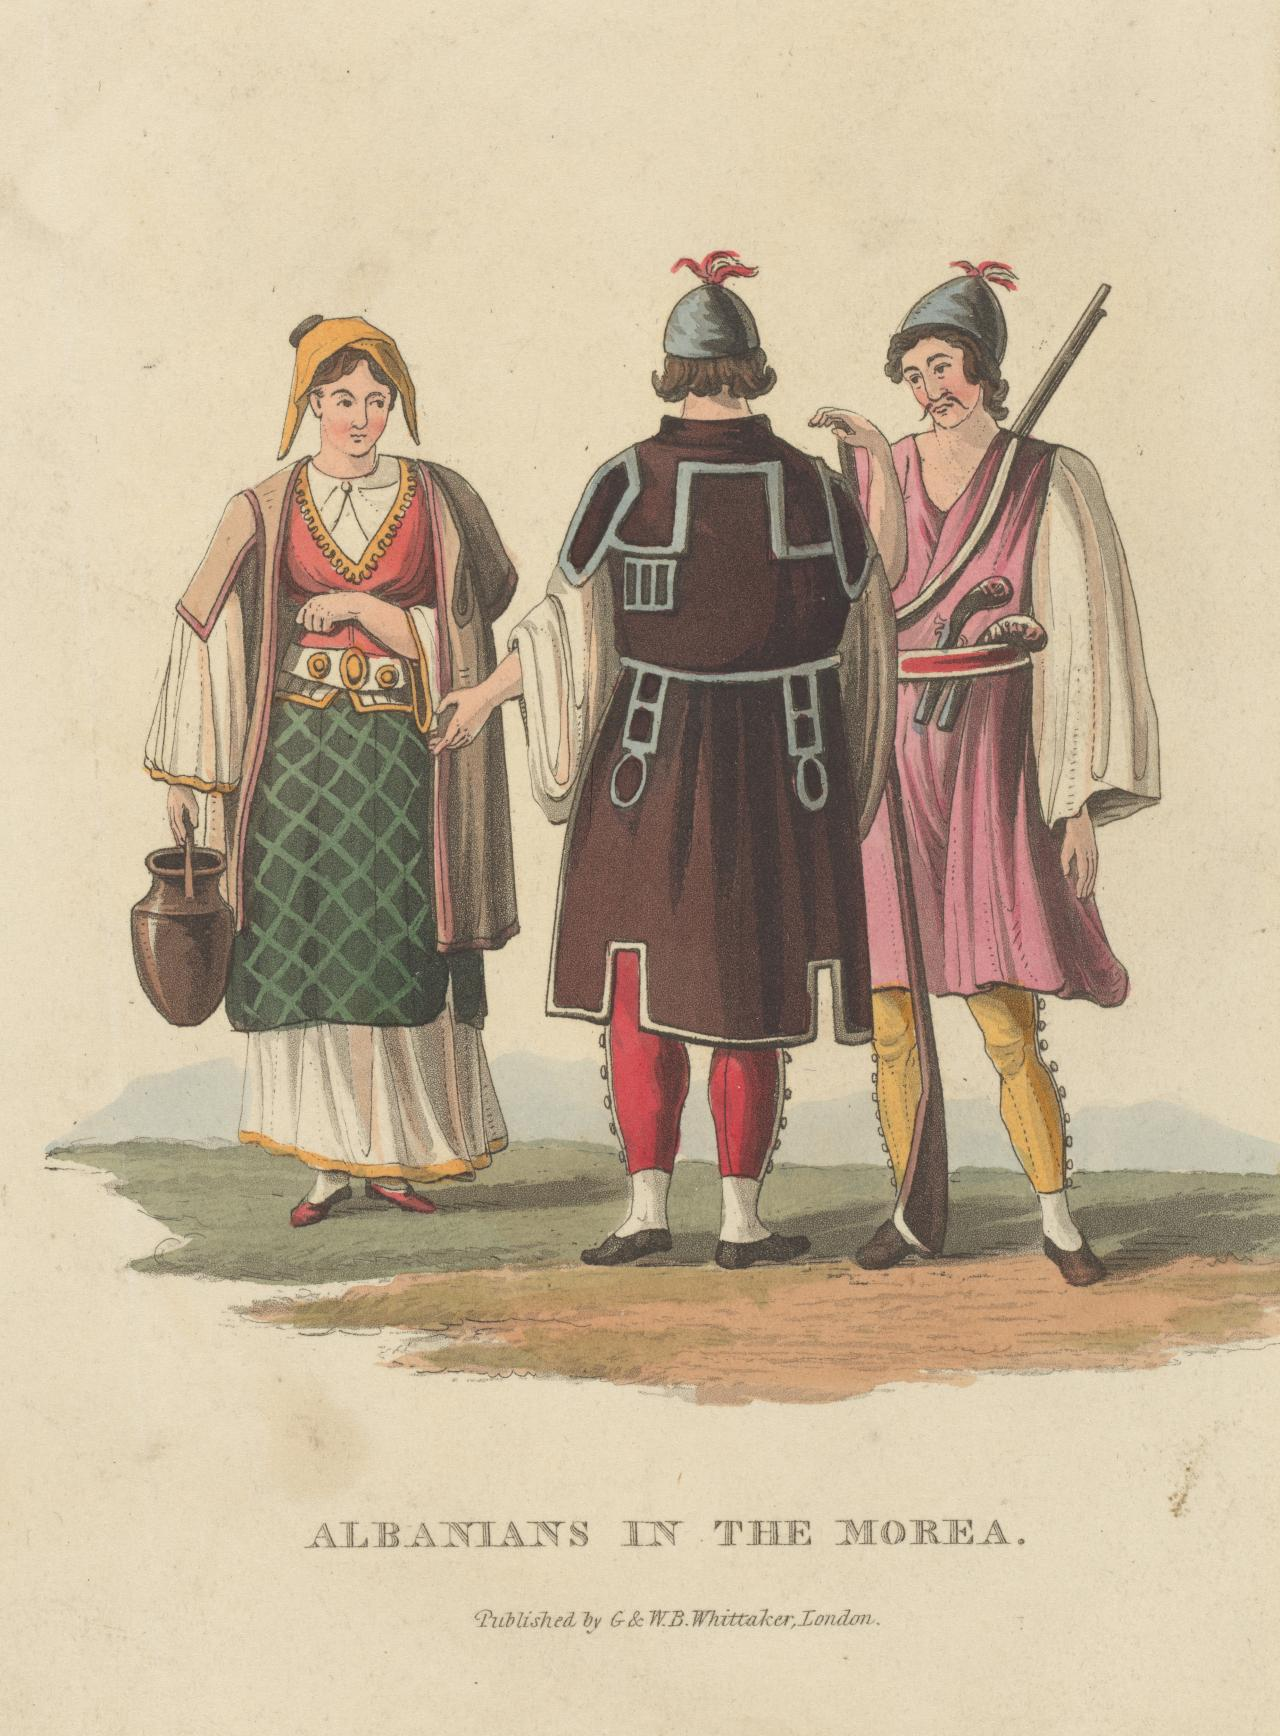 Albanians in the Morea